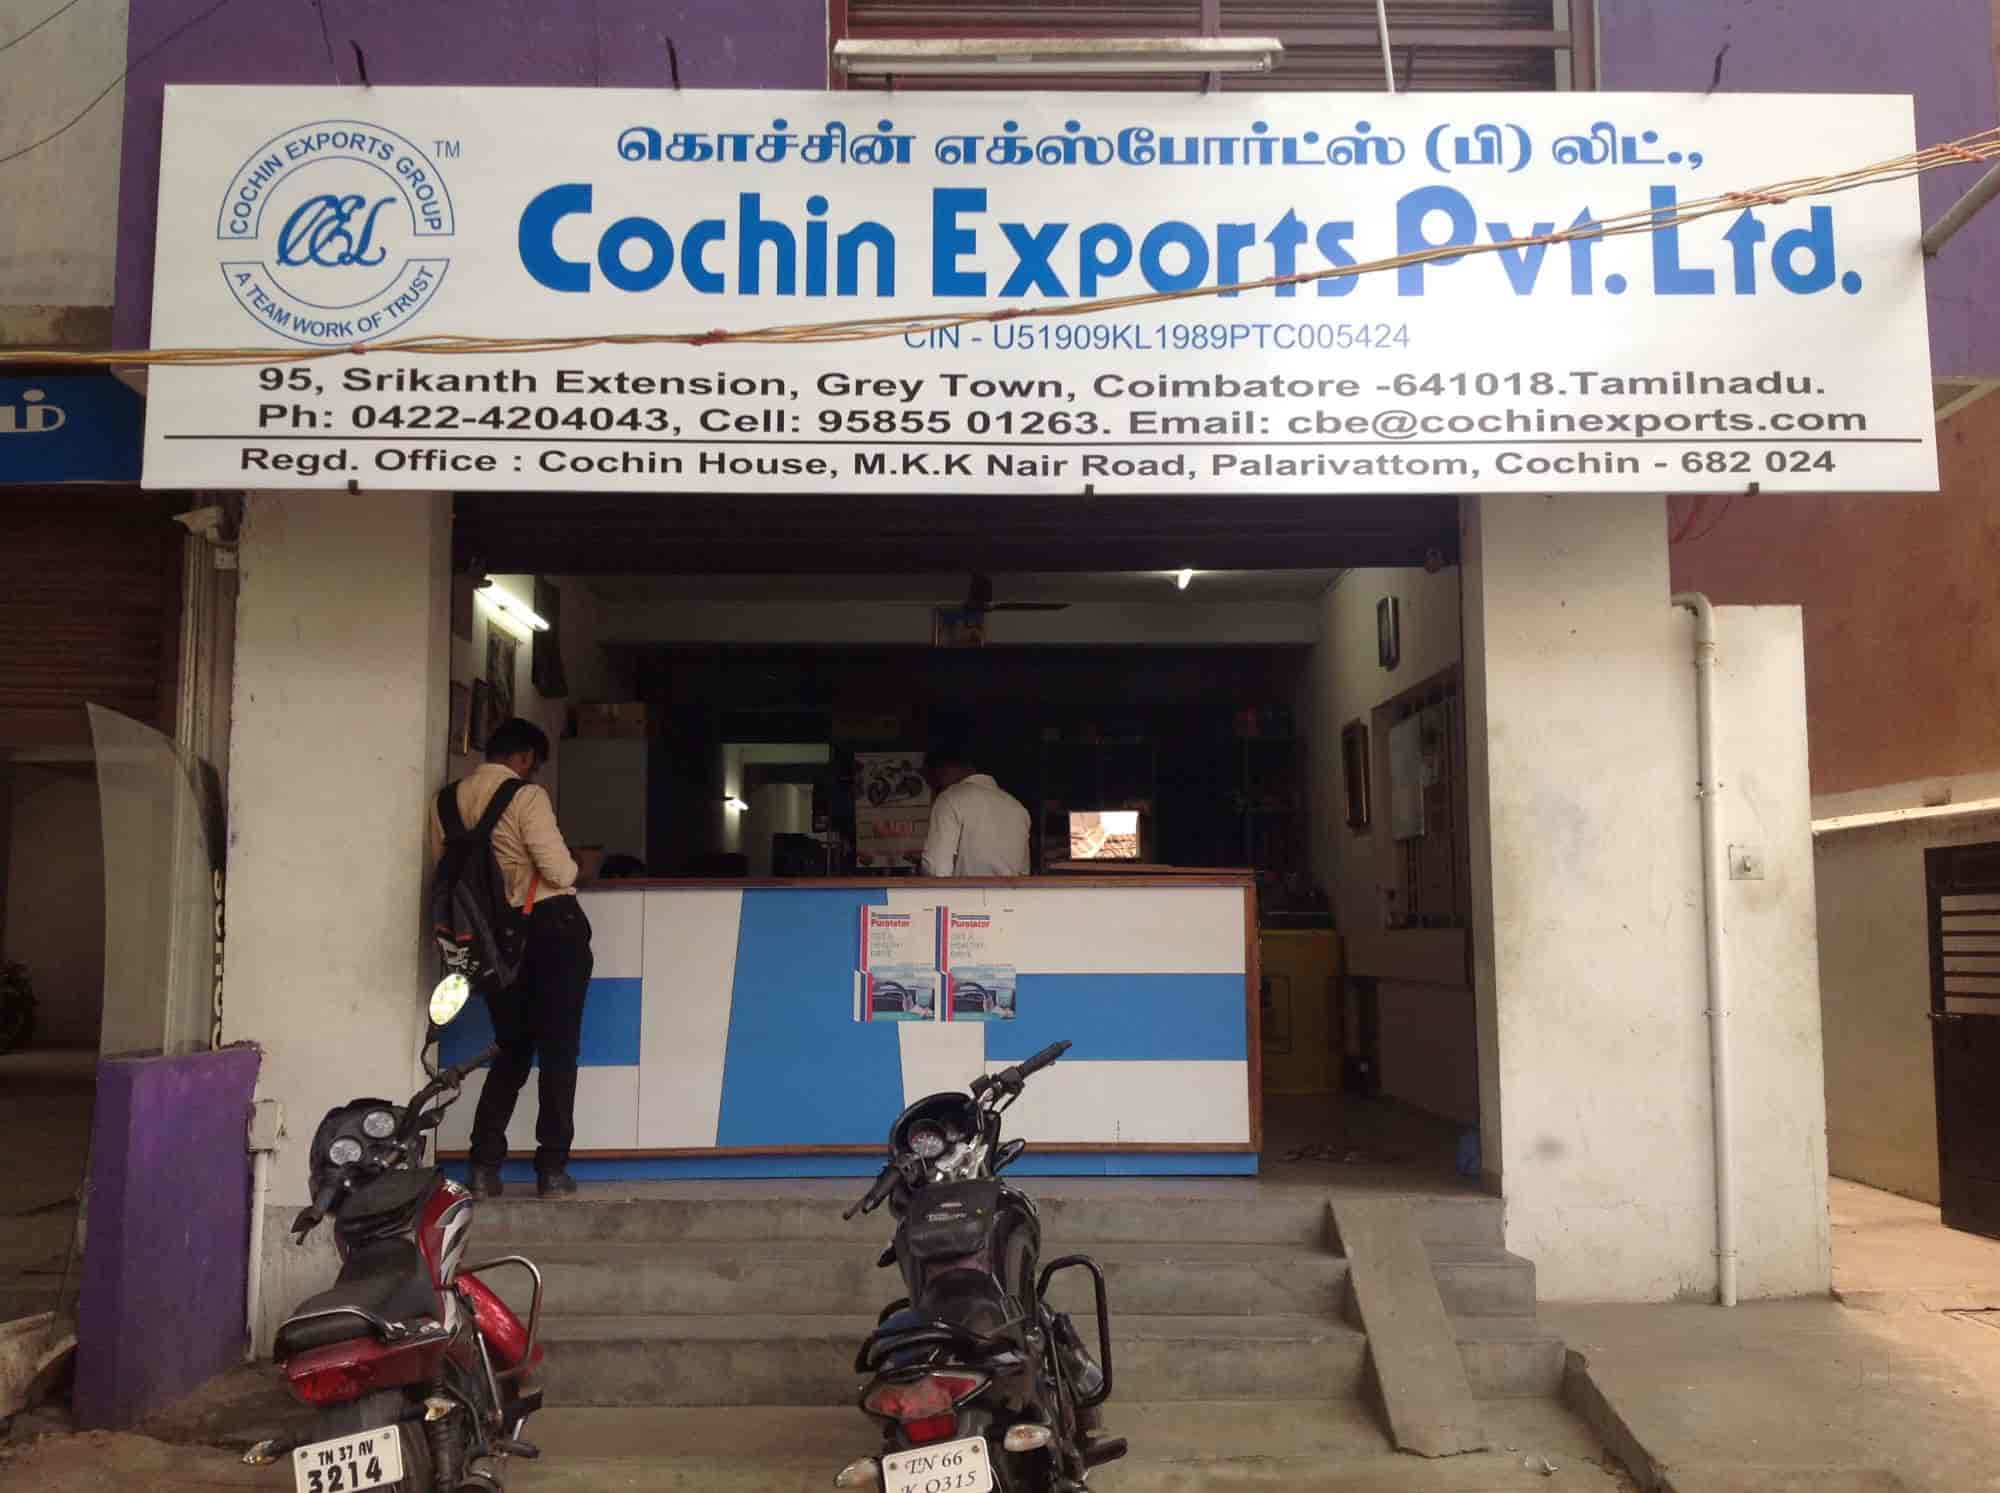 Cochin Exports Pvt Ltd, Grey Town - Automobile Spare Part